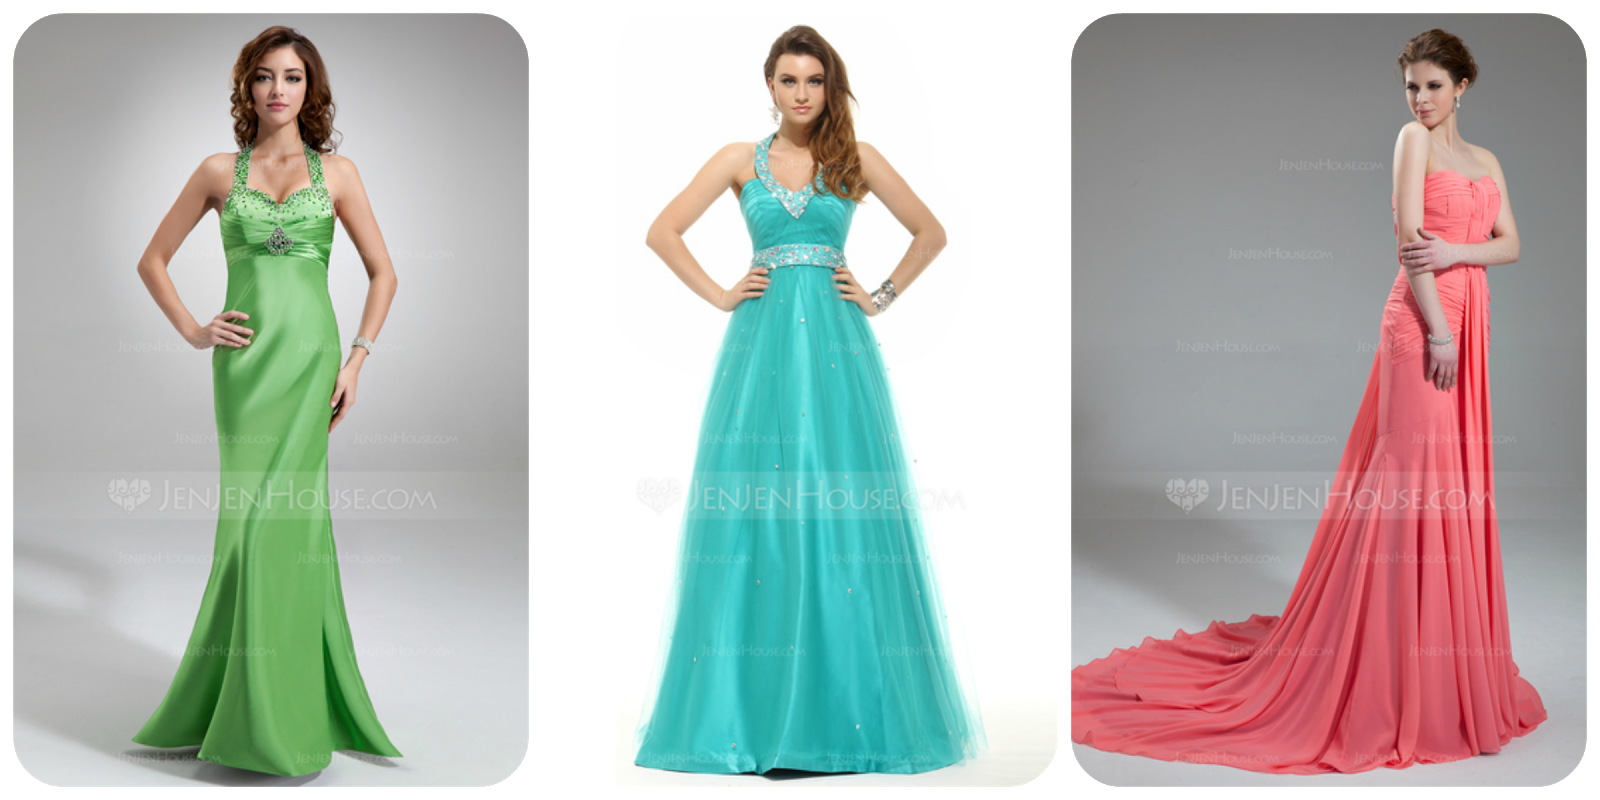 Places to buy prom dresses near me